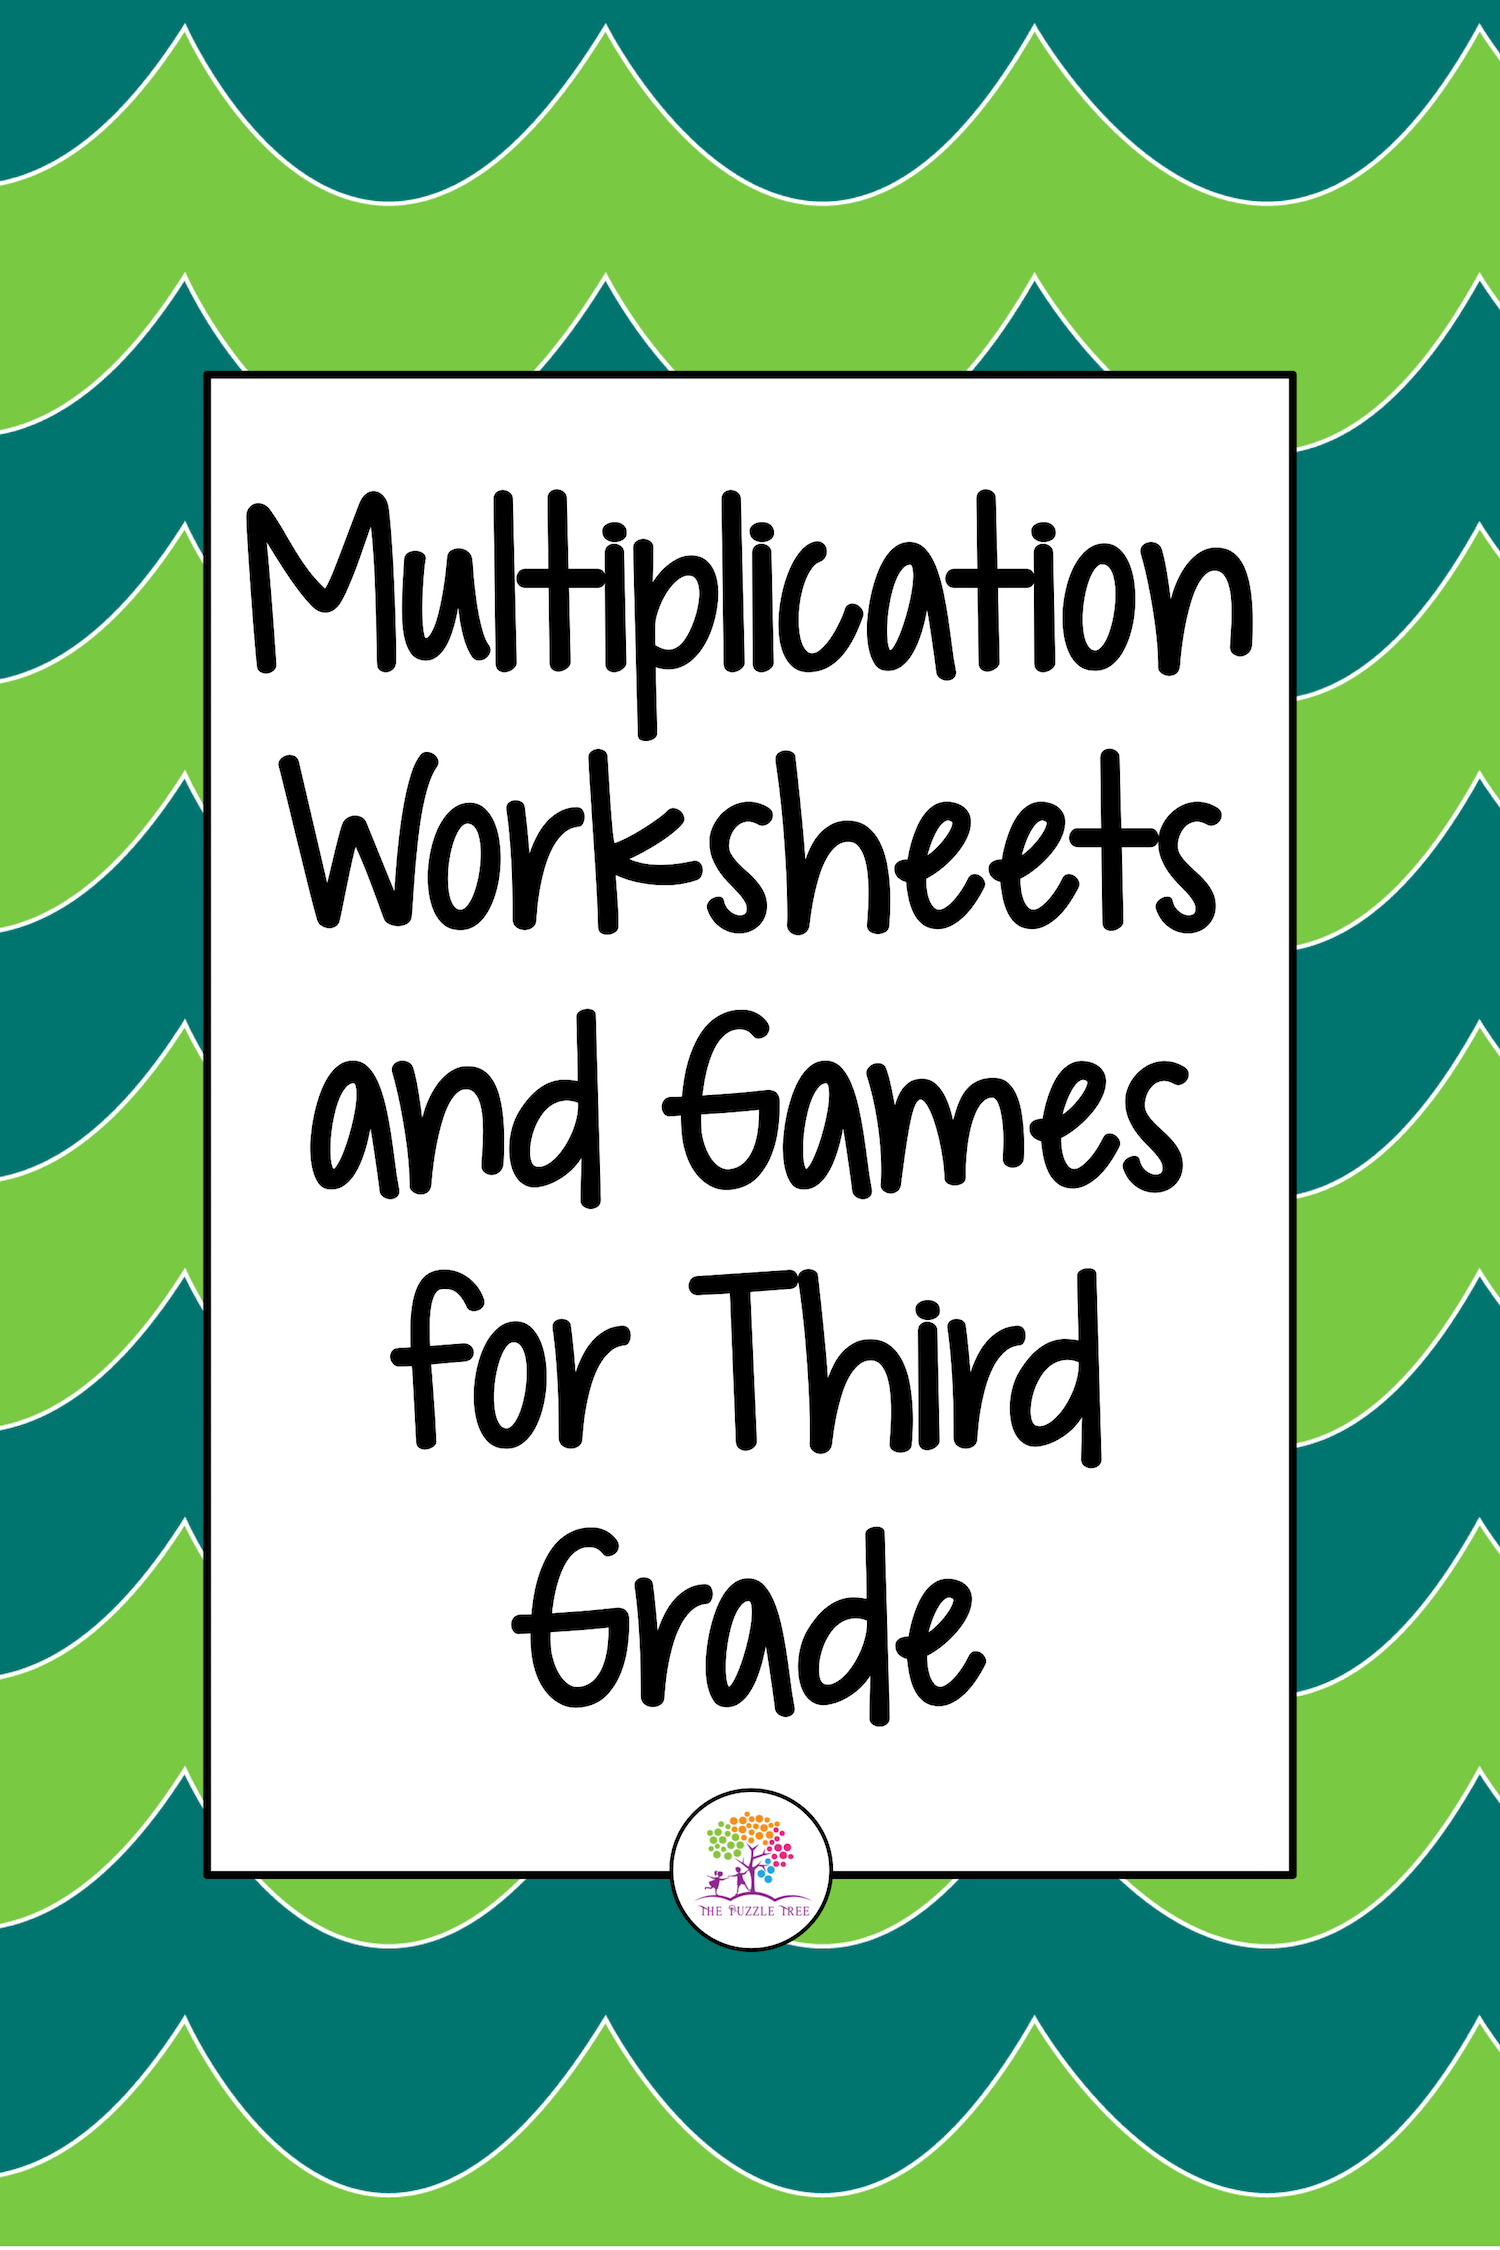 Multiplication Worksheets And Games To Give Your Third